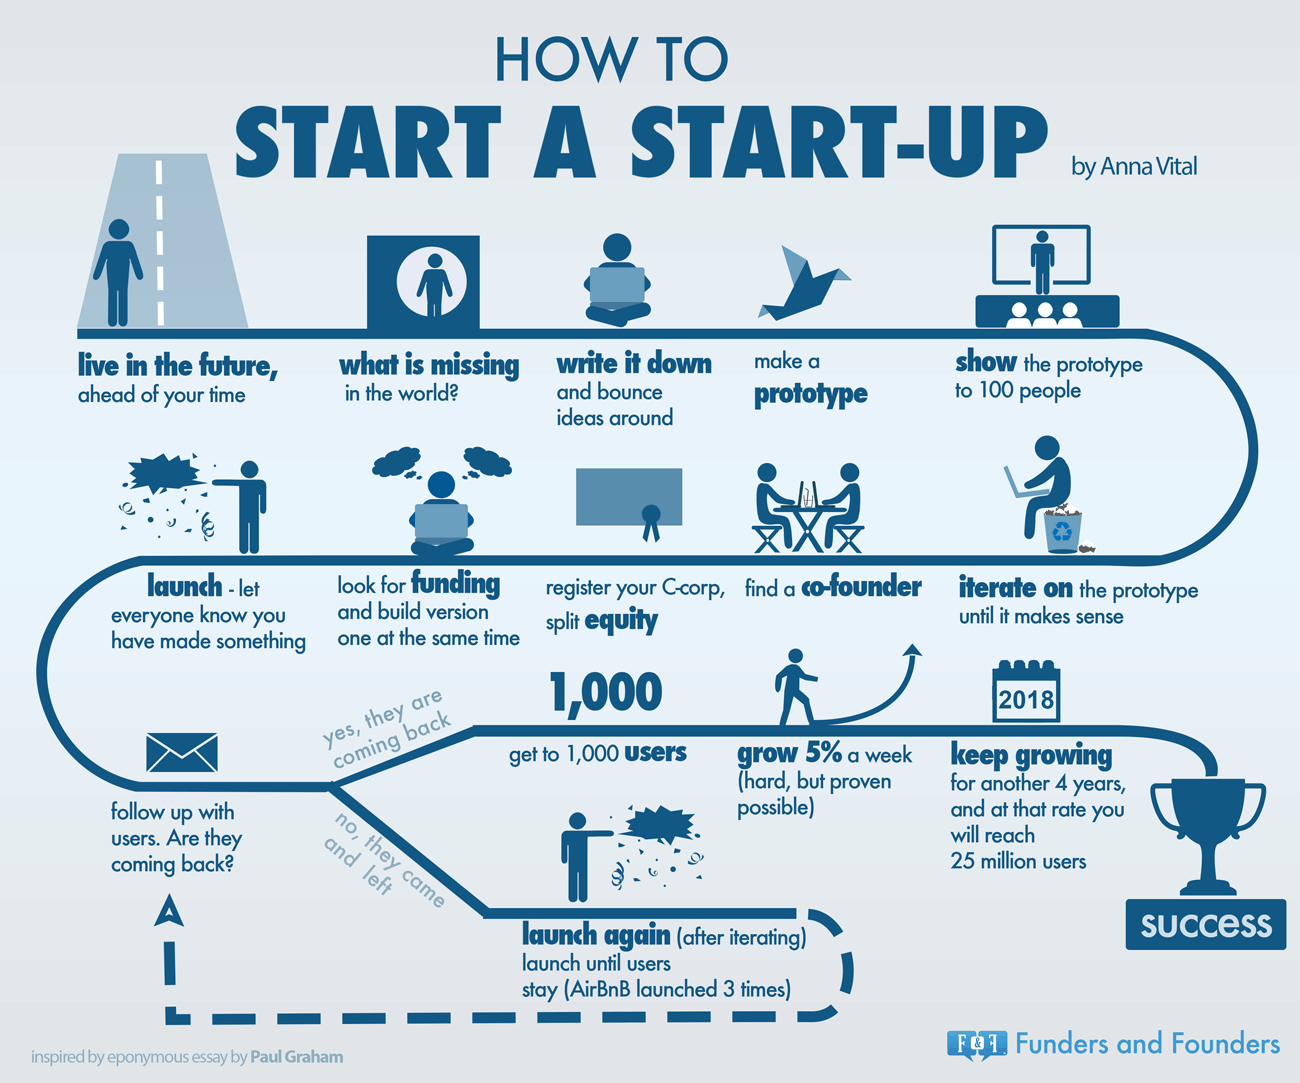 how to start a startup  infographic  biz it  start up business  how to start a startup paulgraham essay reinterpreted by annavital